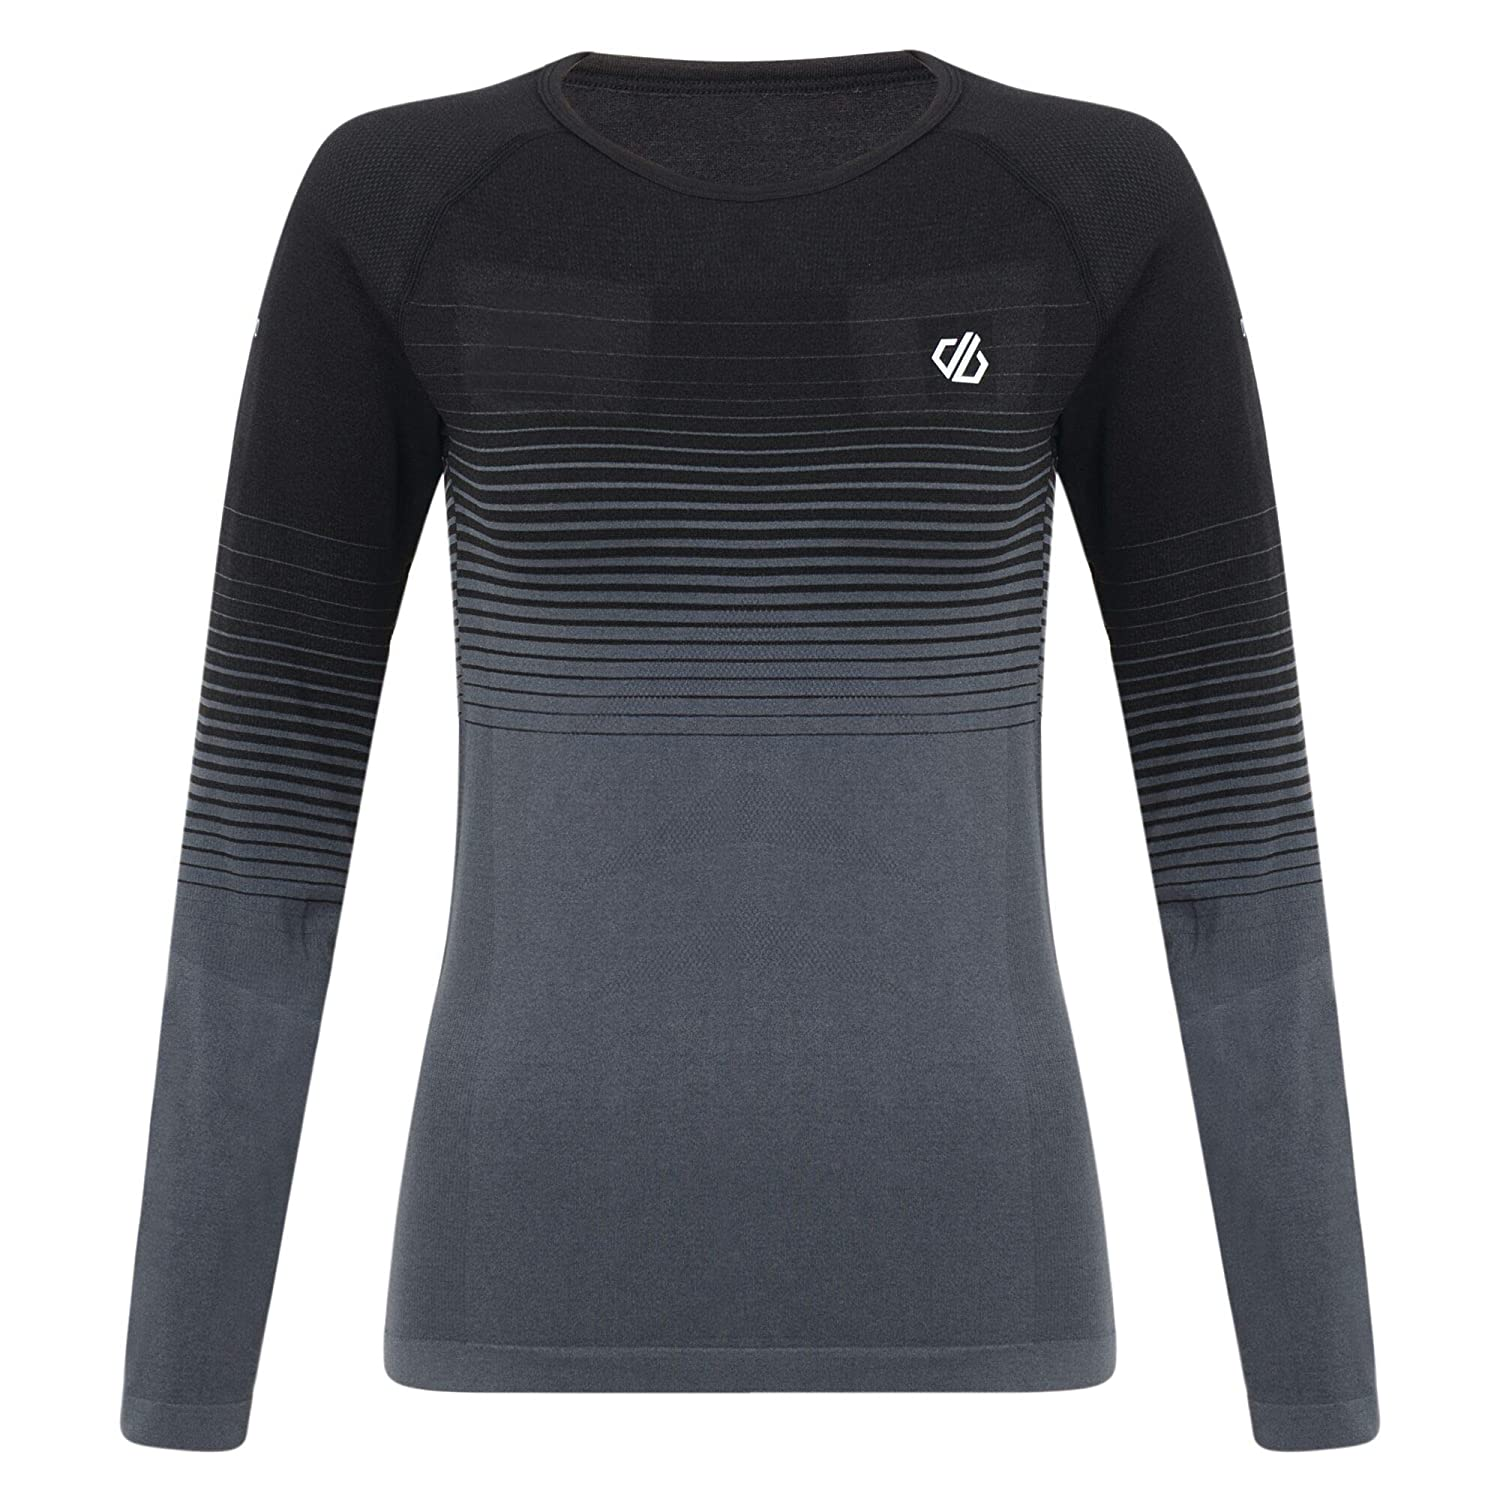 Mujer Dare 2b In The Zone Perfomance Fast Wicking Quick Drying Base Layer Long Sleeve Top with Seamless Technology and Ergonomic Body Map Fit Ropa Interior